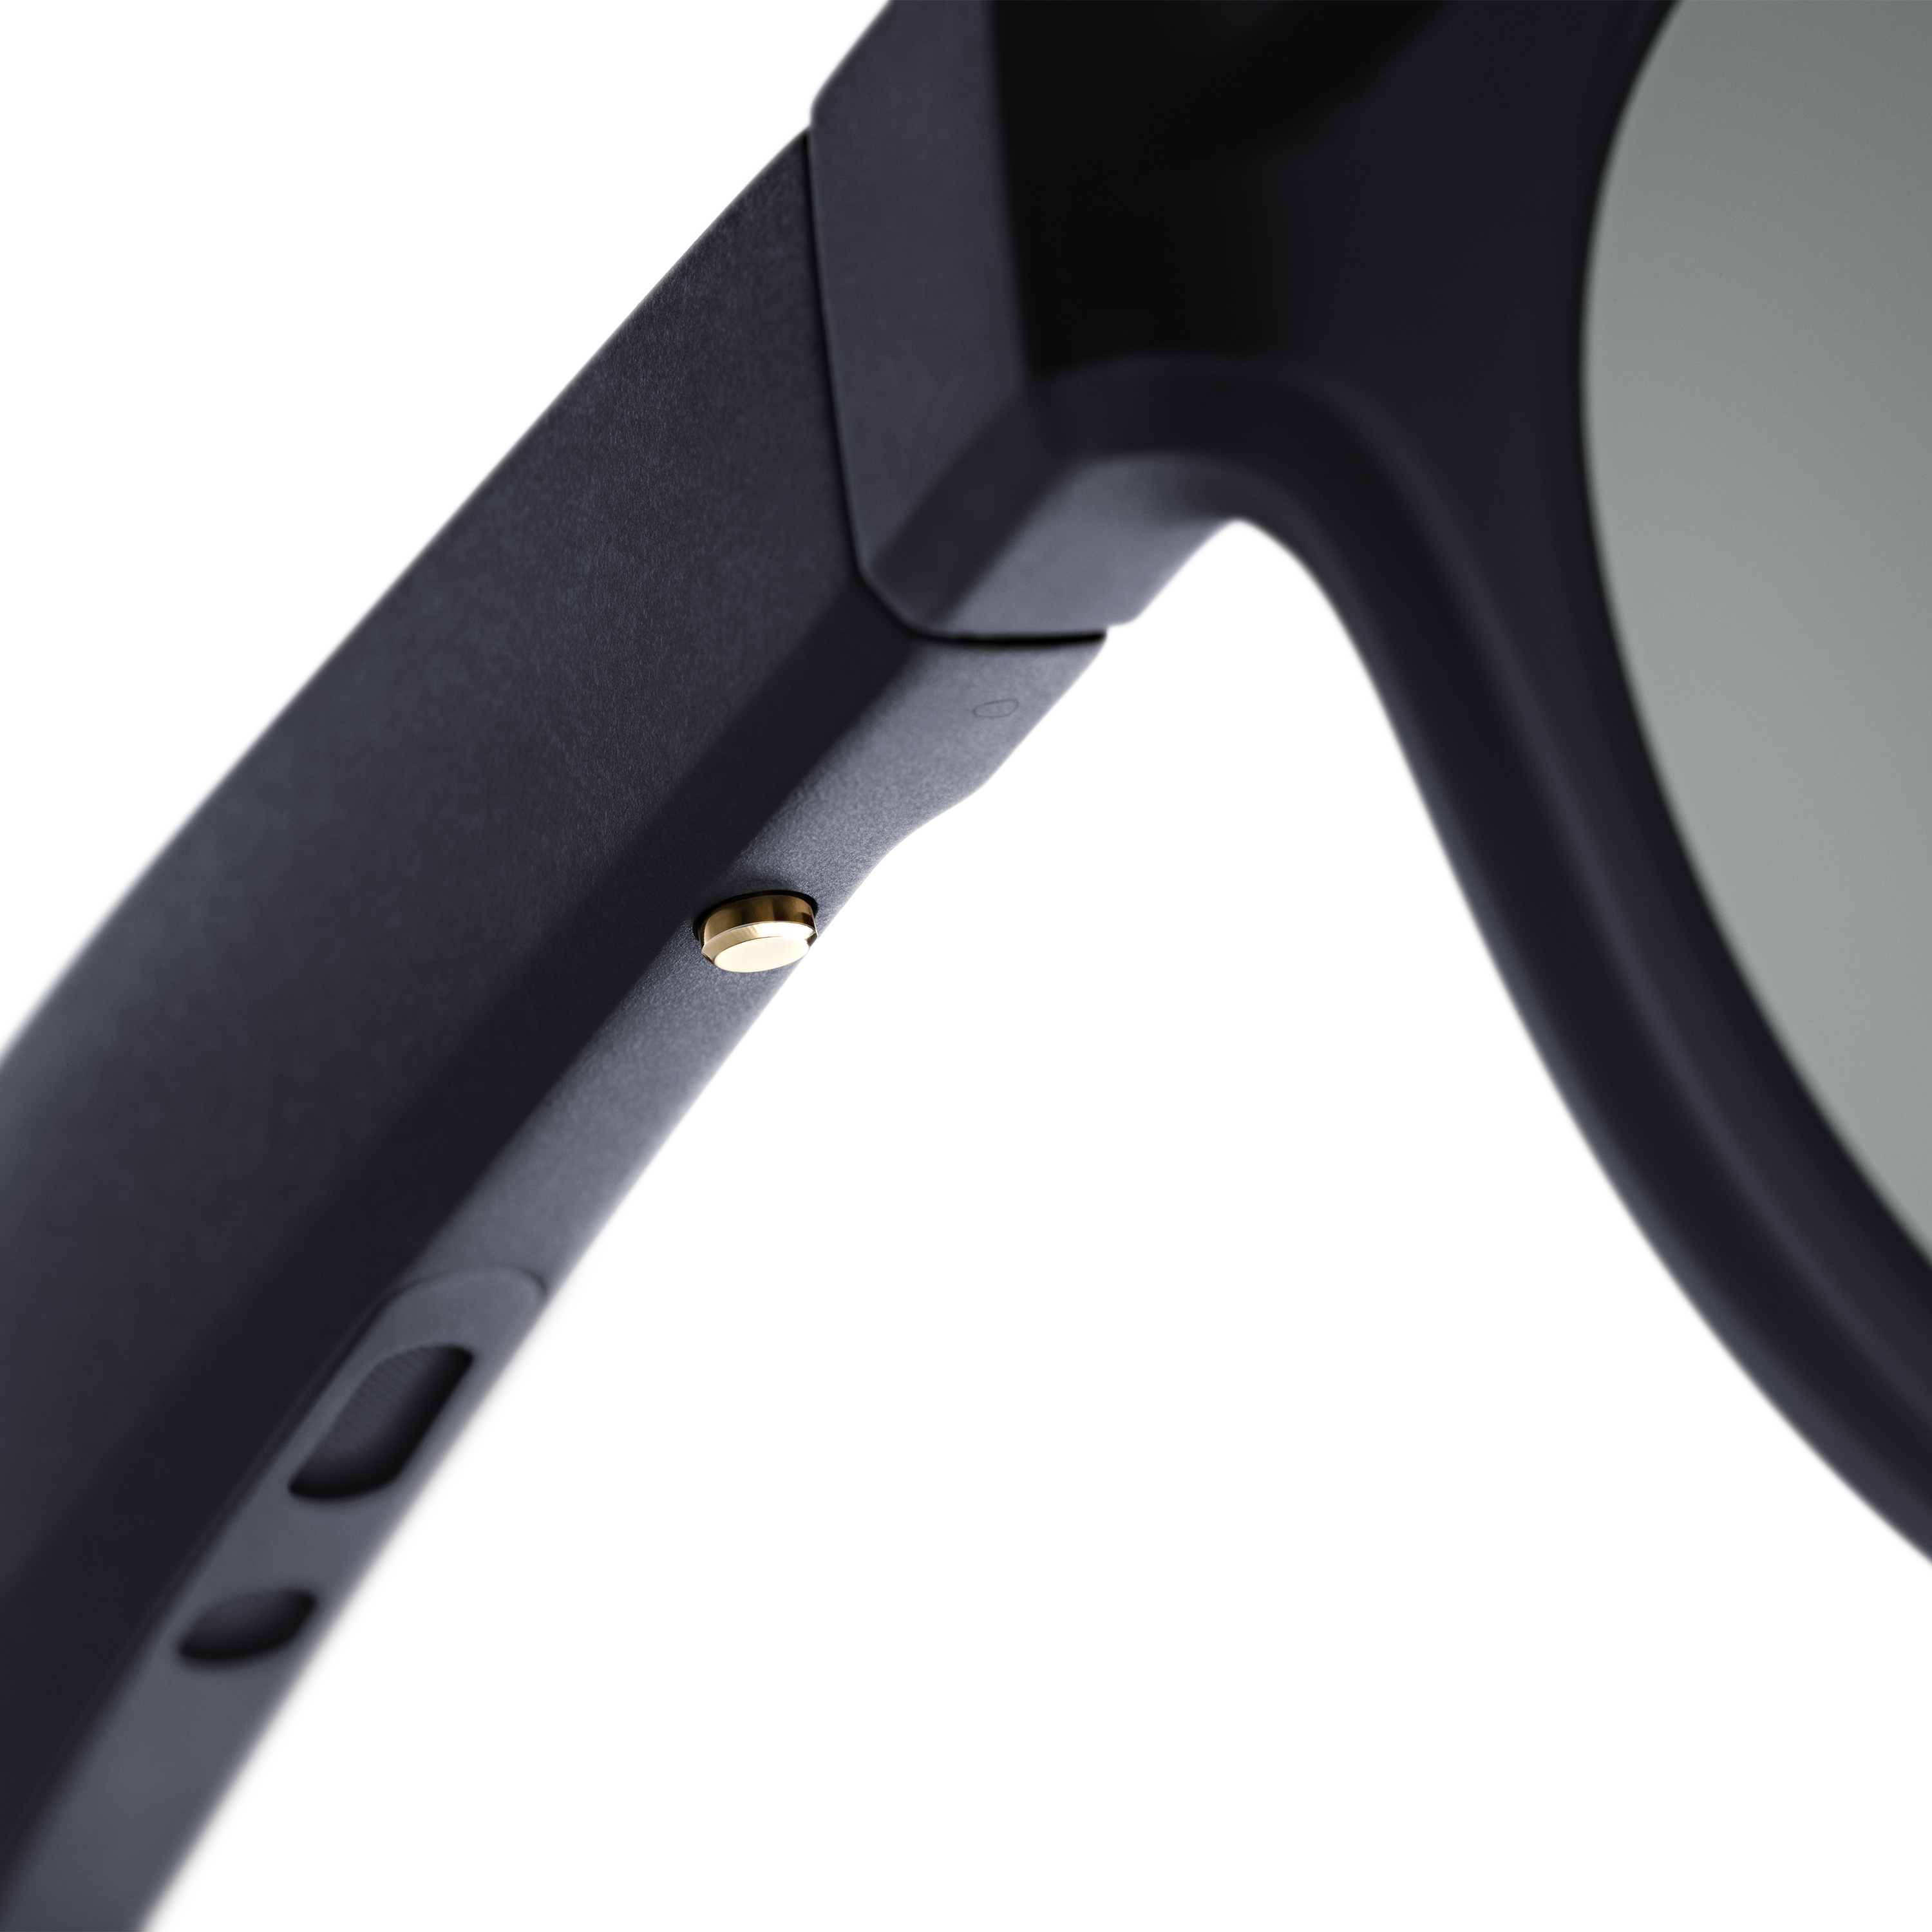 d1d53b88a5 Bose is dabbling in  audio AR  with a pair of sunglasses » News ...